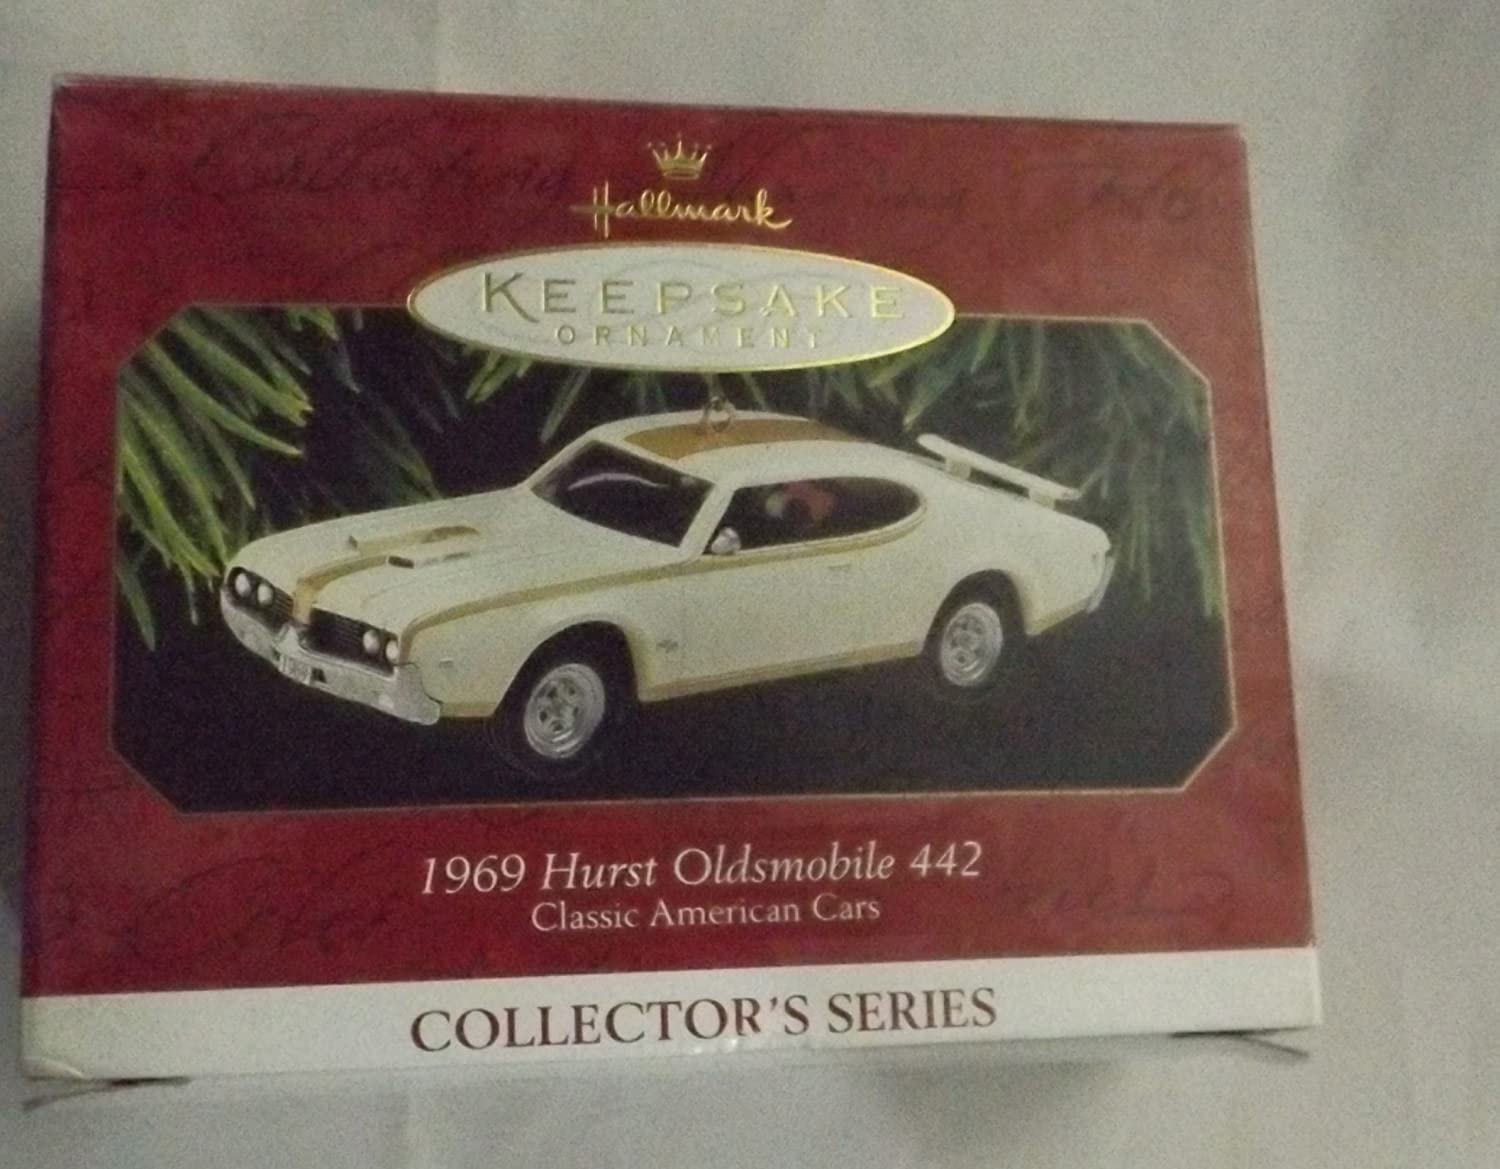 Hallmark 1969 Hurst Oldsmobile 442 Car Christmas Ornament 1997 by Keepsake  Ornament